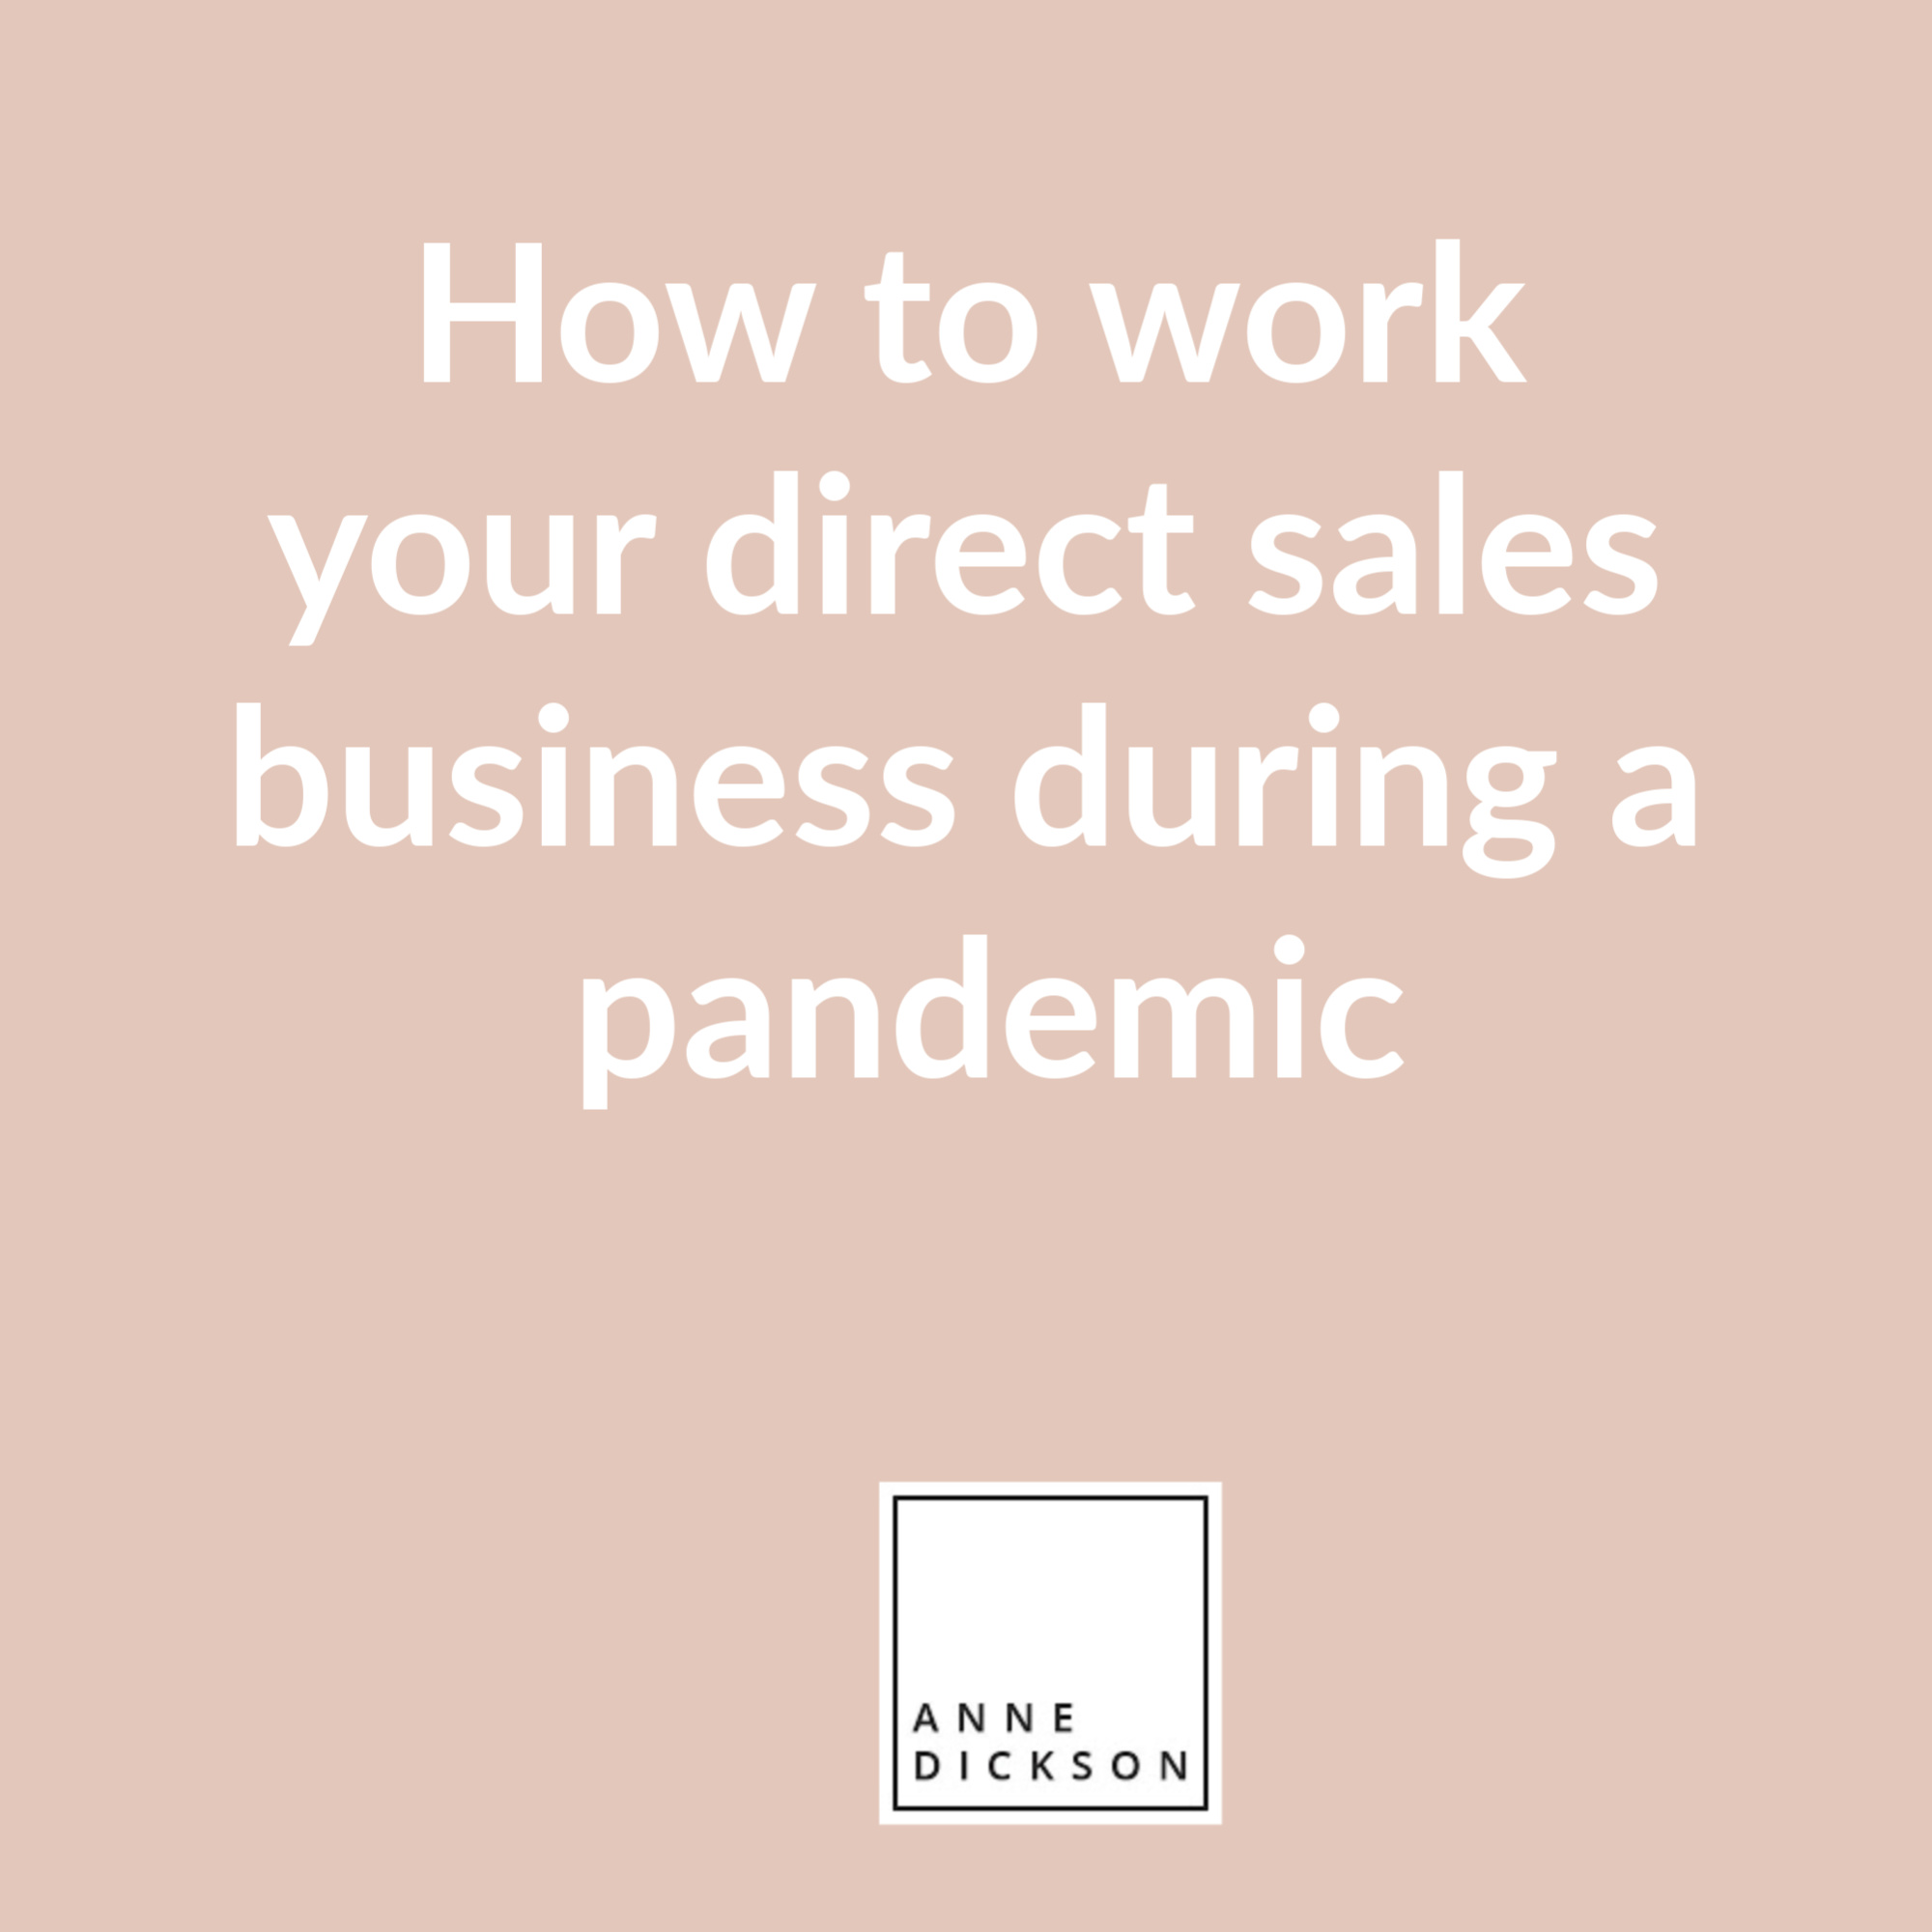 How to work your direct sales business during a pandemic